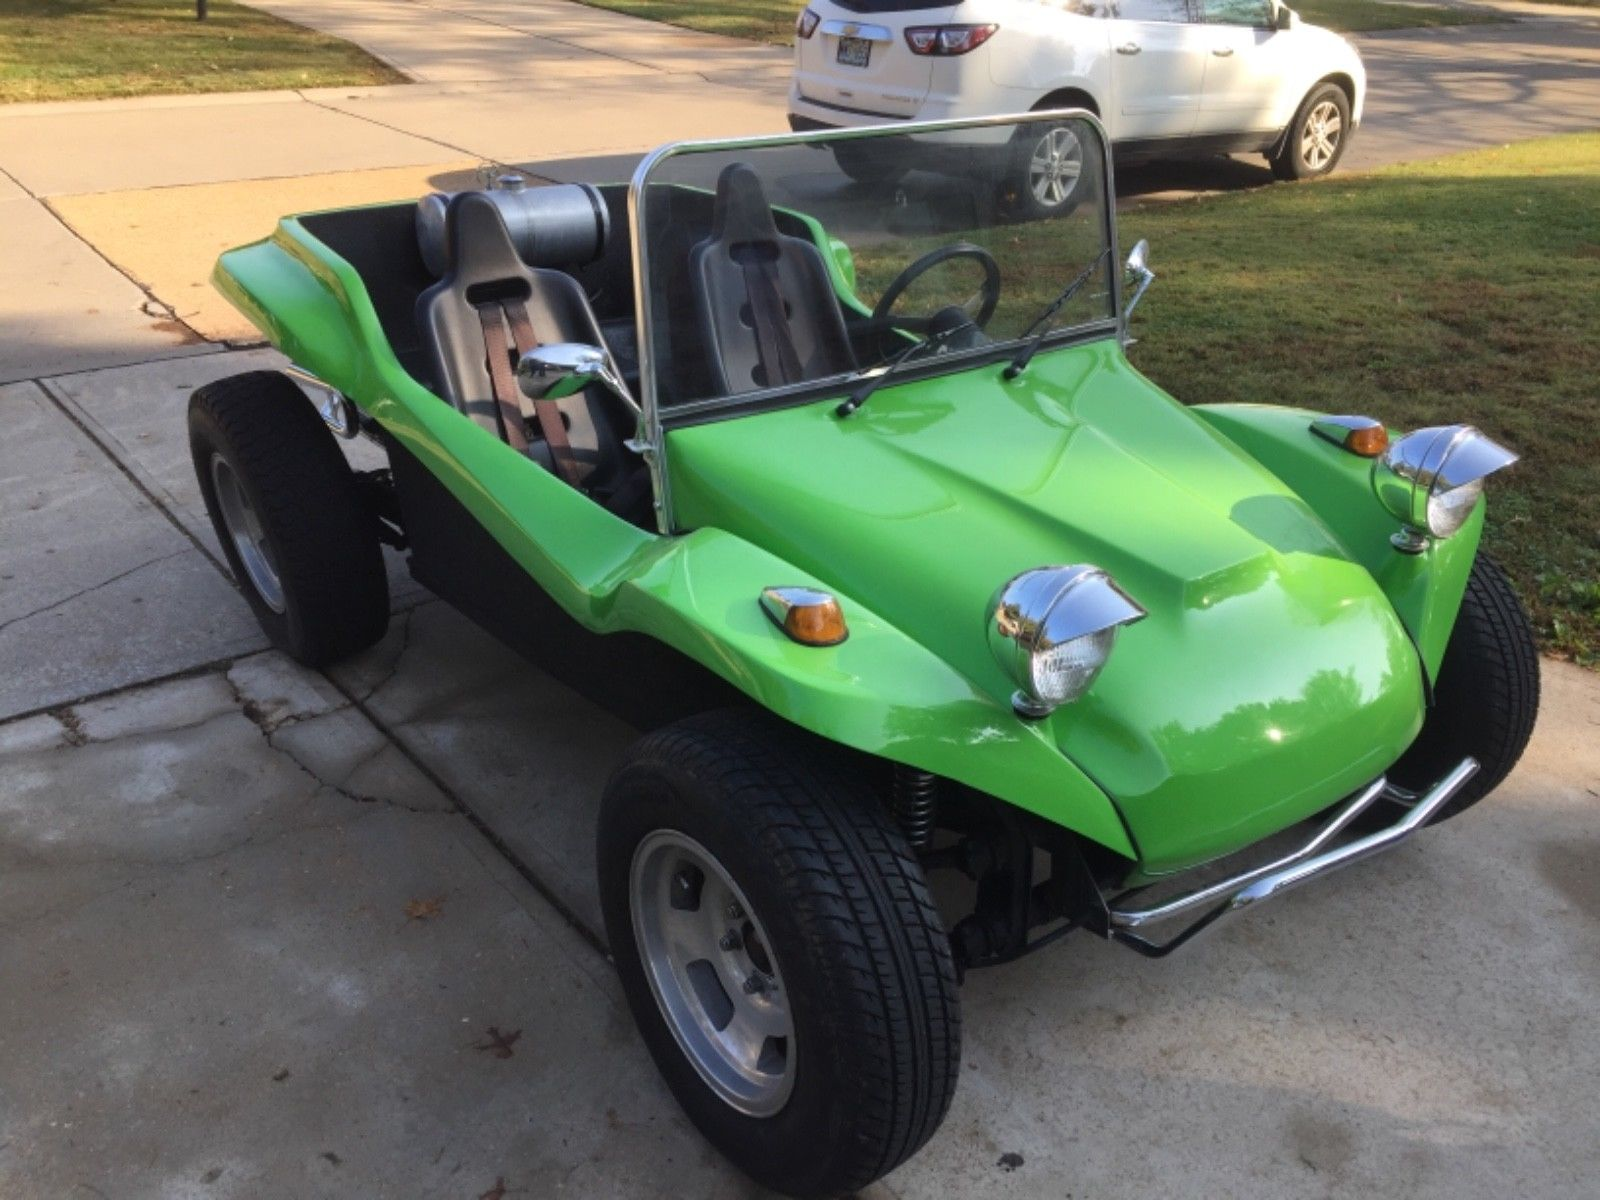 Air-Cooled Awesome: Get The Dune Buggy And Enjoy The Sun!